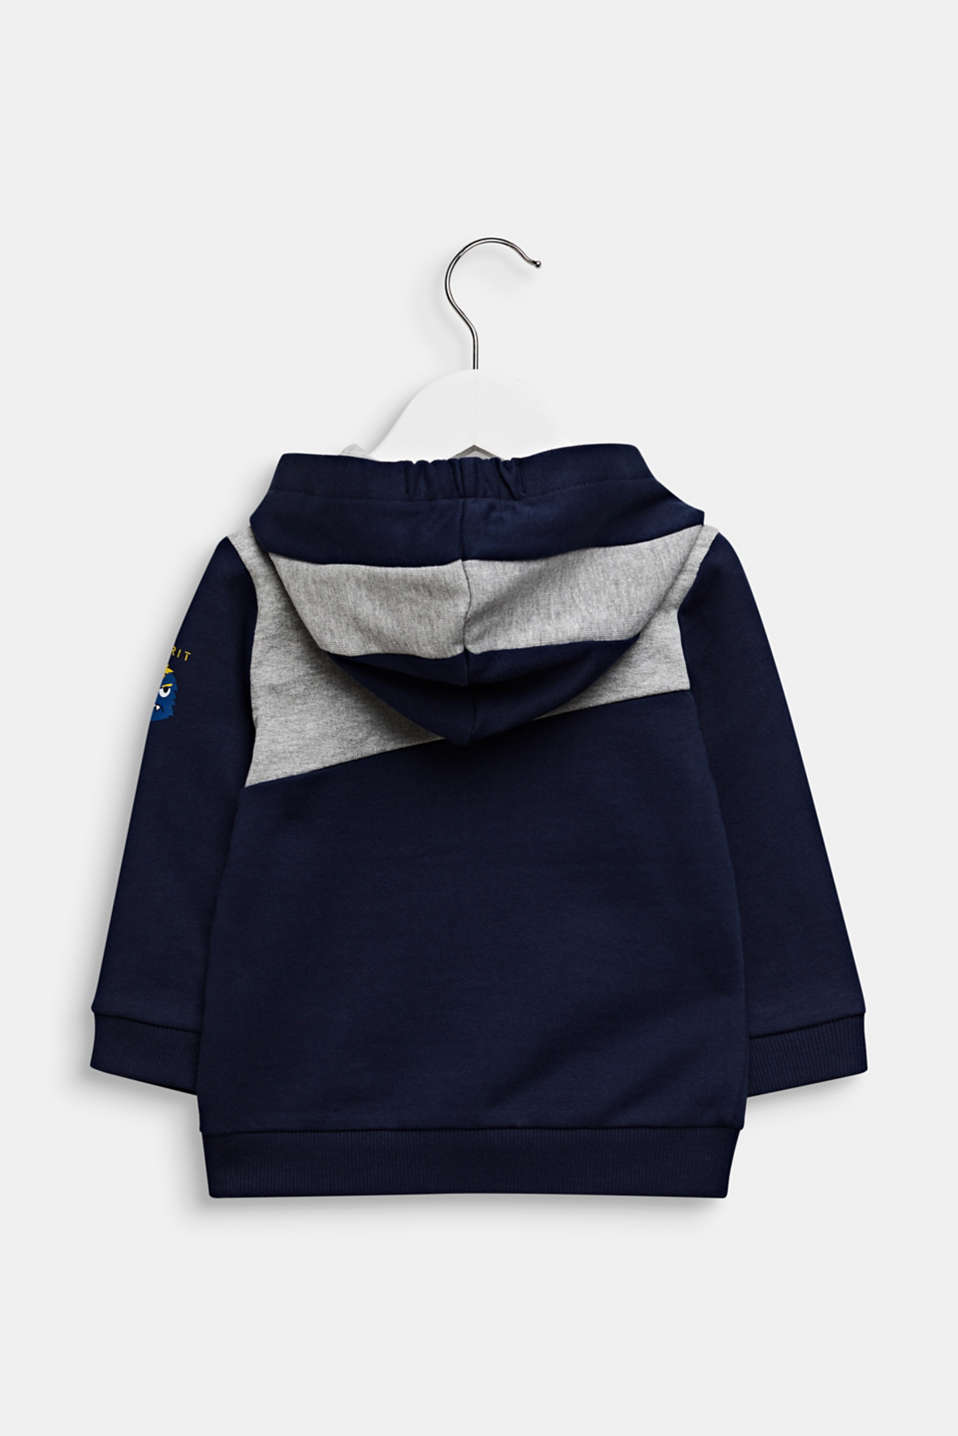 Colour block sweatshirt cardigan with a hood, LCMIDNIGHT BLUE, detail image number 1